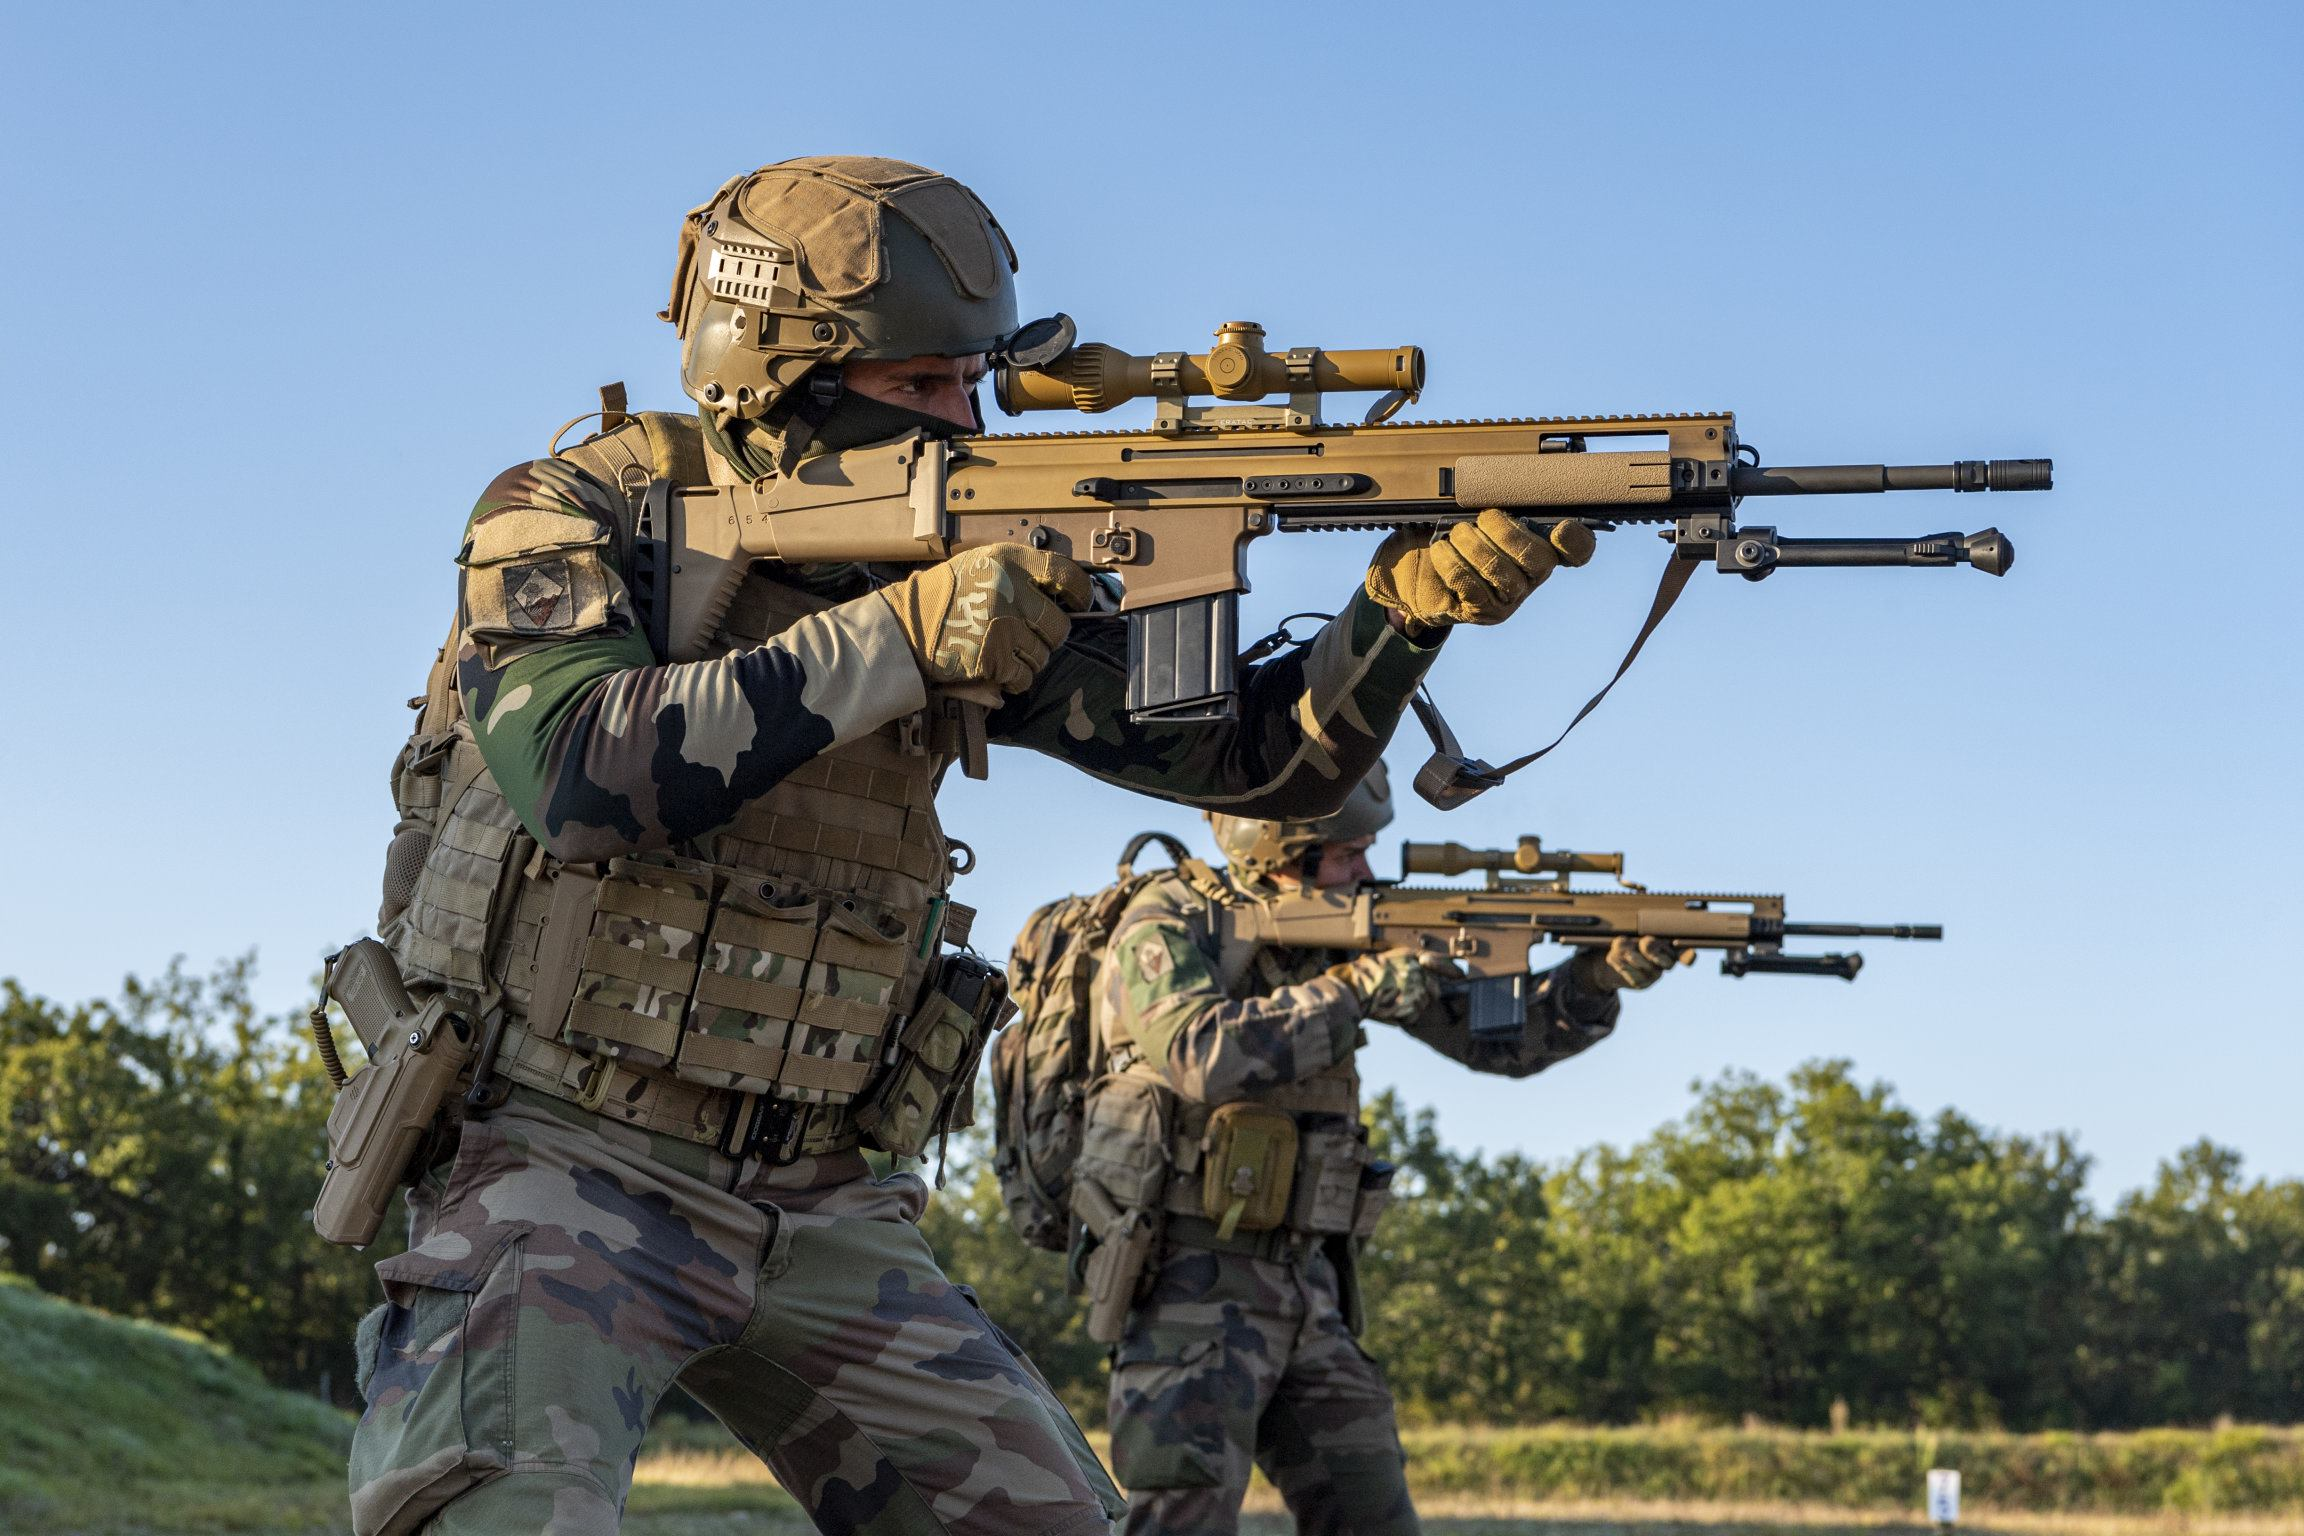 French Army sharpshooters adjusting to the new FN SCAR-H PR rifle, replacing the old FR-F2 bolt-action